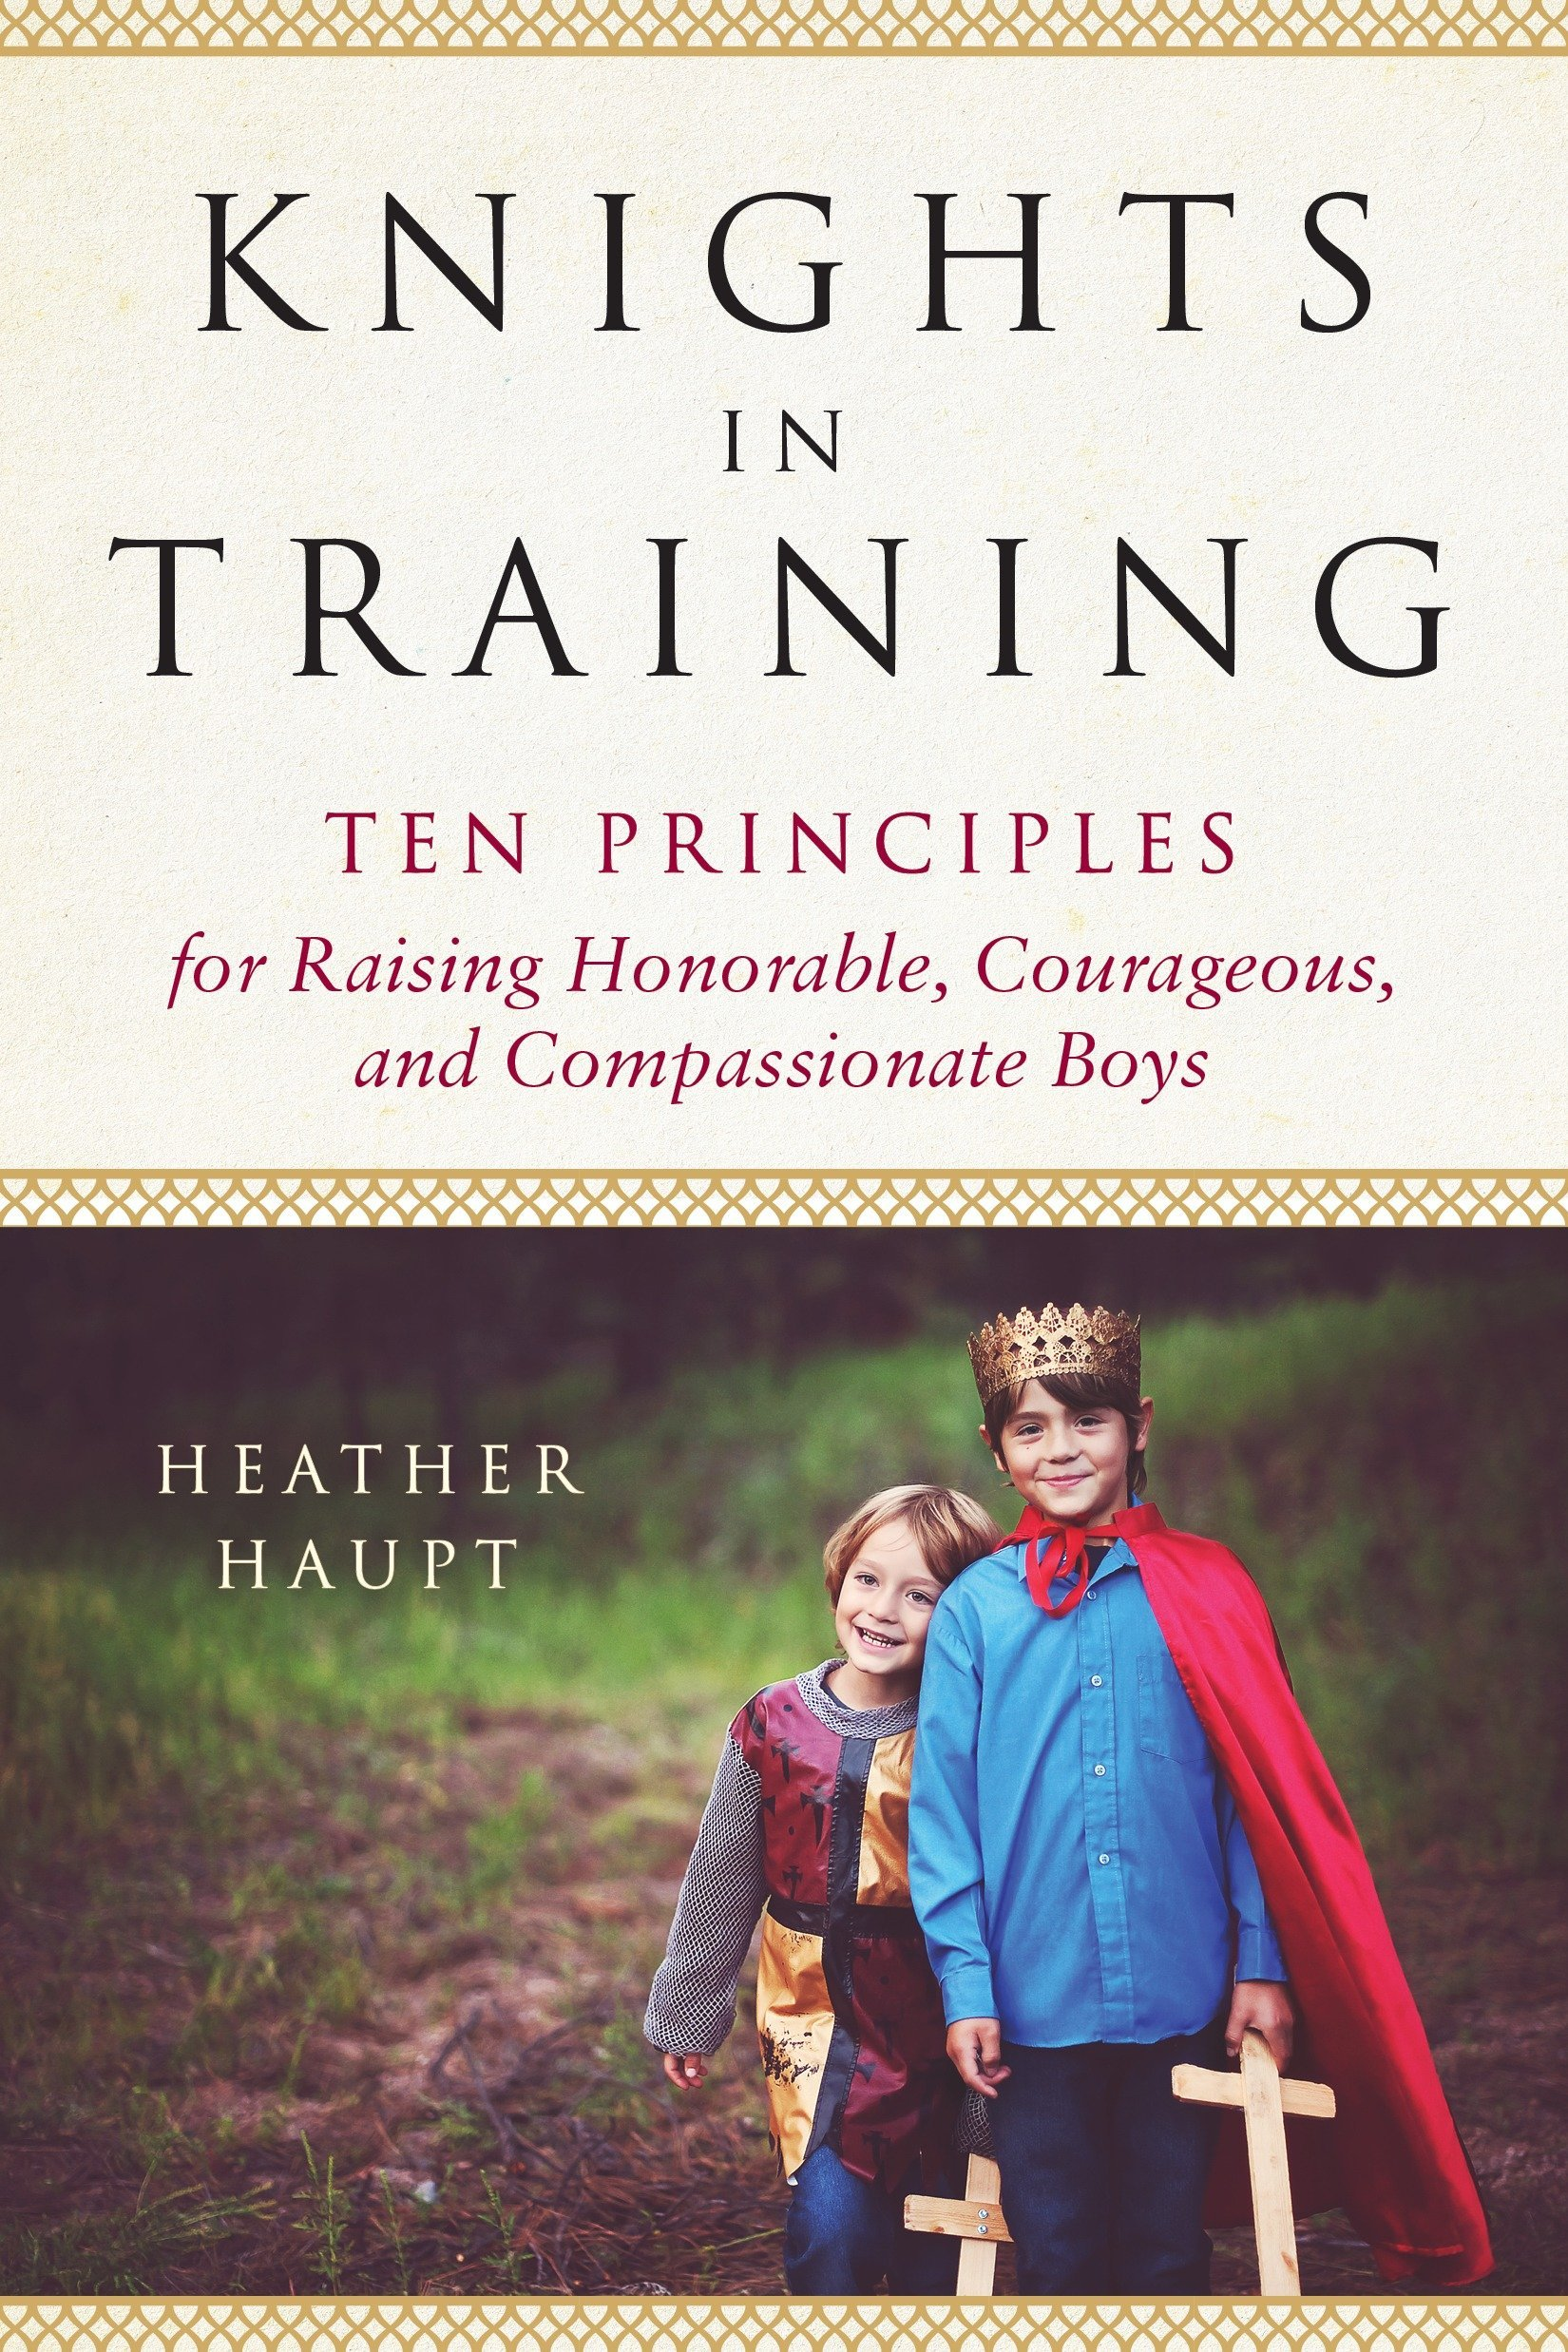 Download Knights in Training: Ten Principles for Raising Honorable, Courageous, and Compassionate Boys pdf